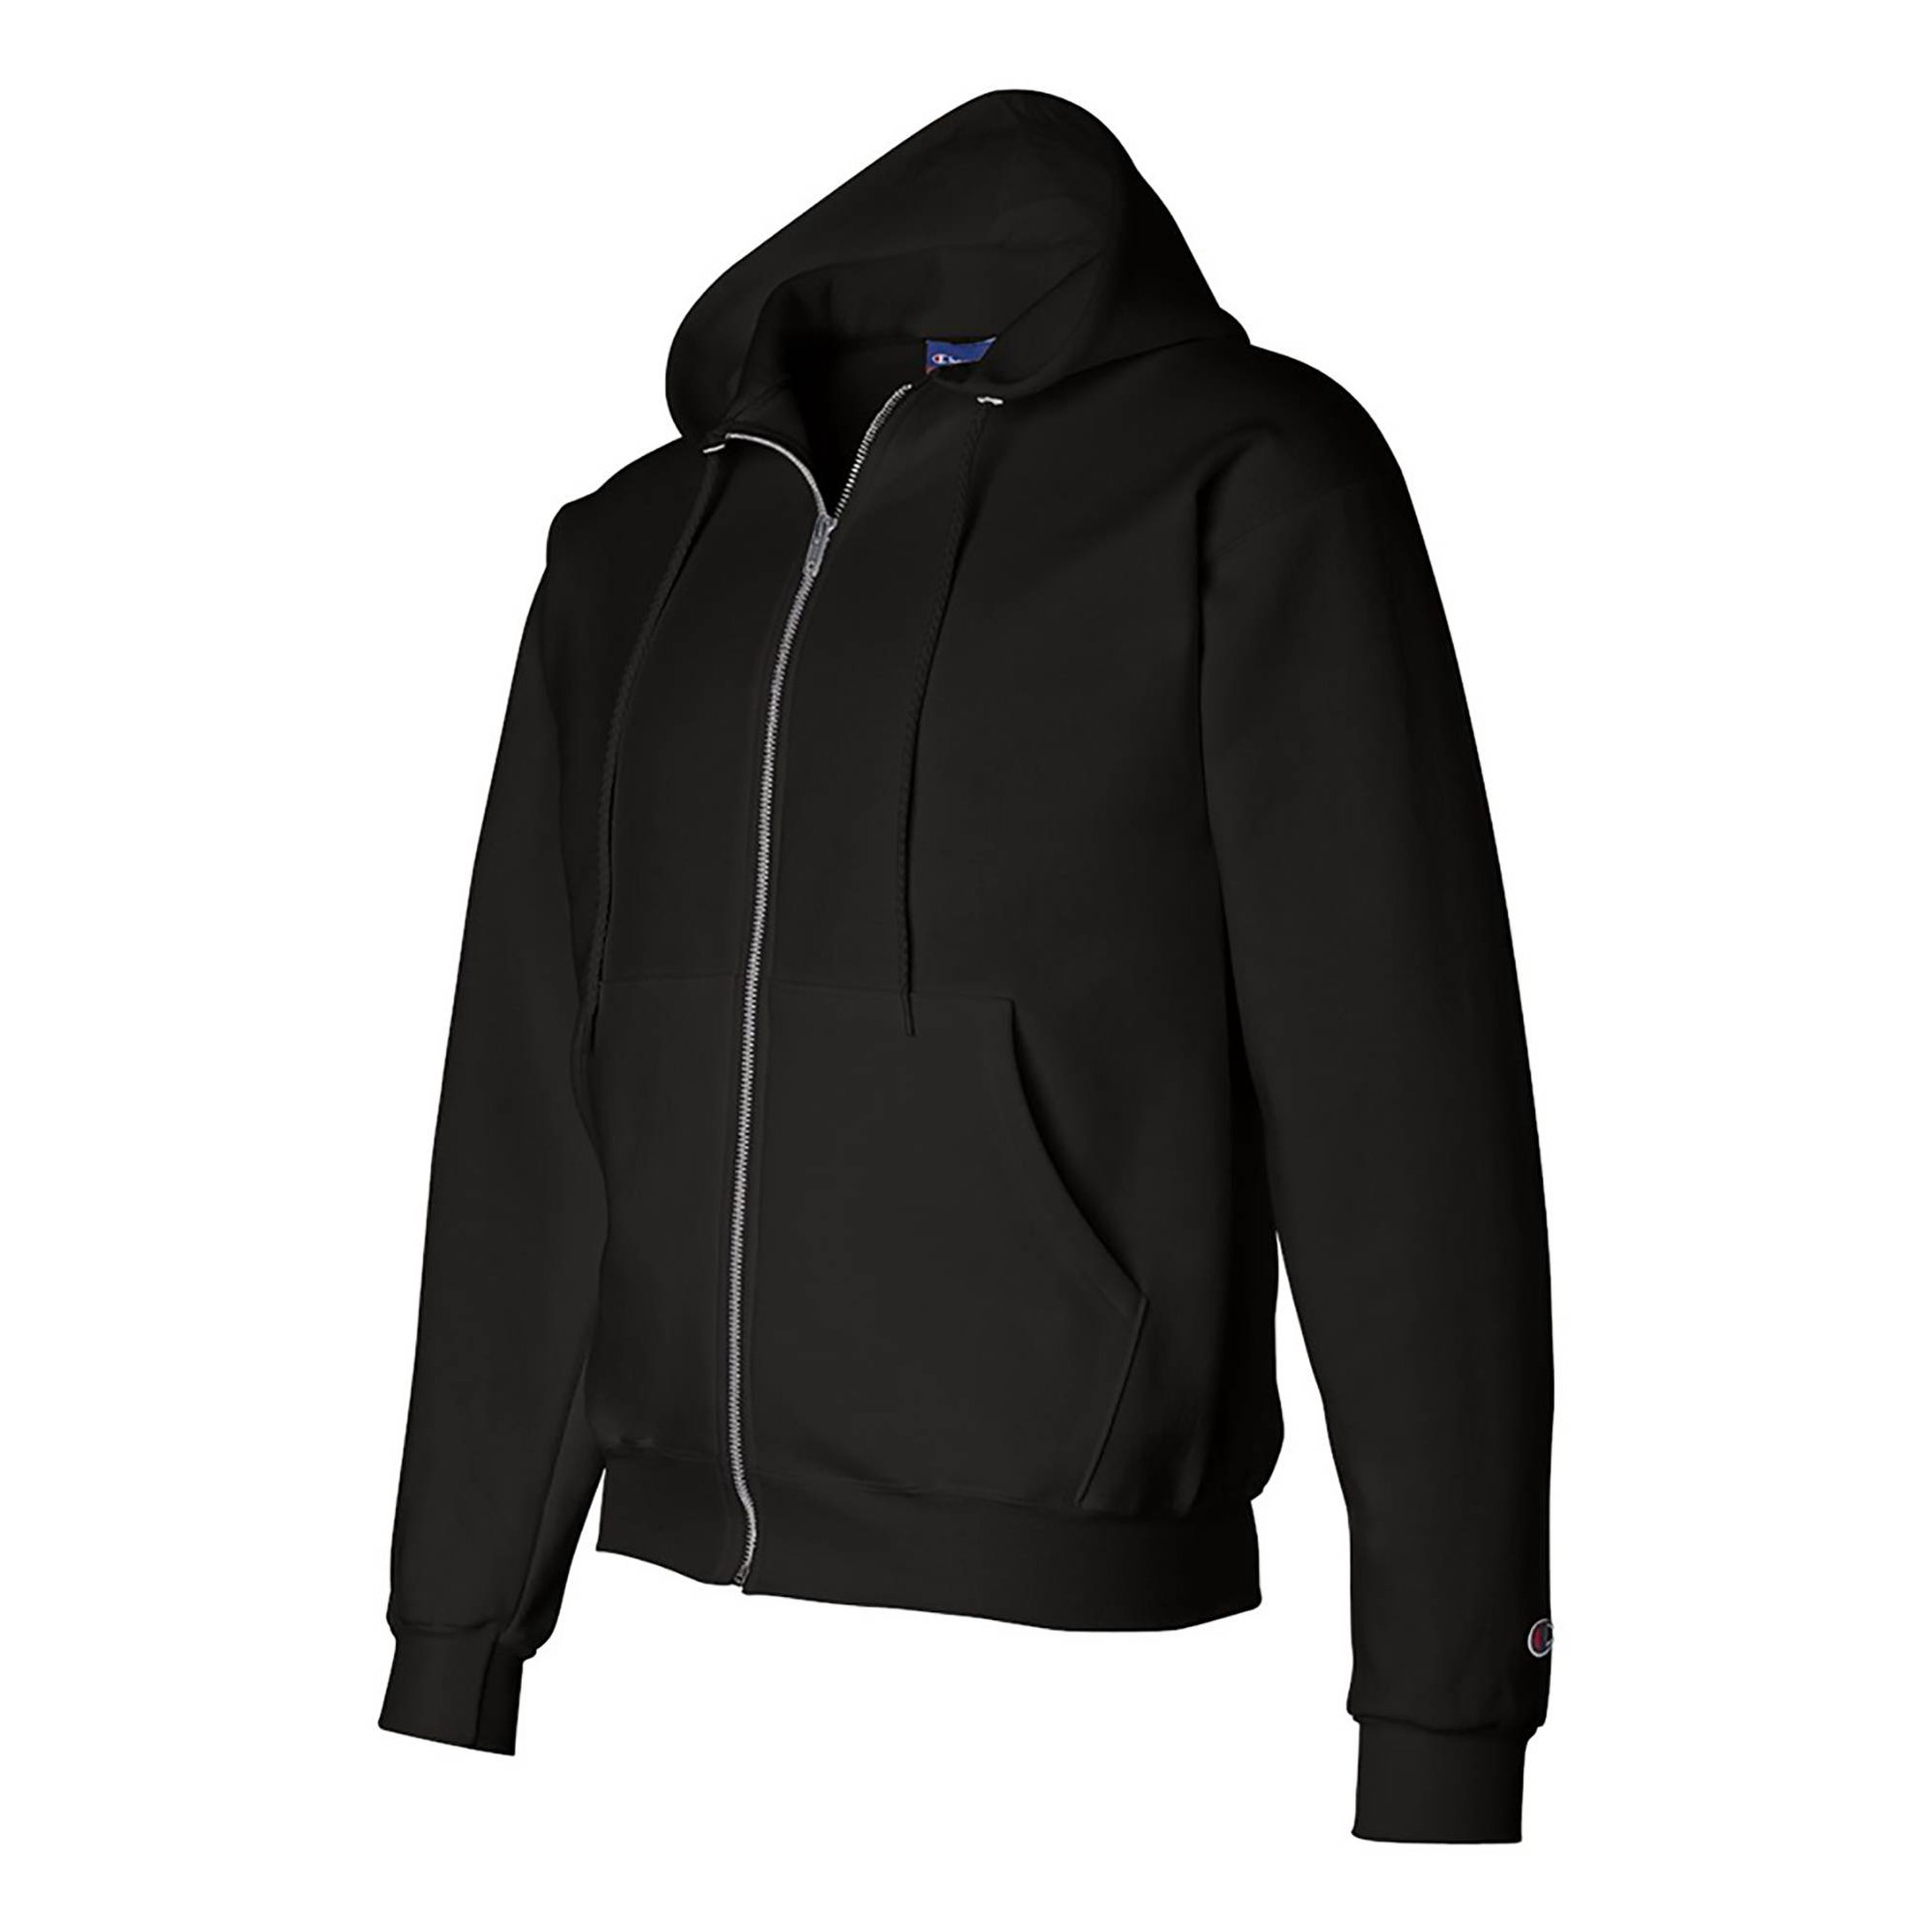 Adult Full Champion 5050 SweatshirtBlackLarge Zip Hooded WDHI29E